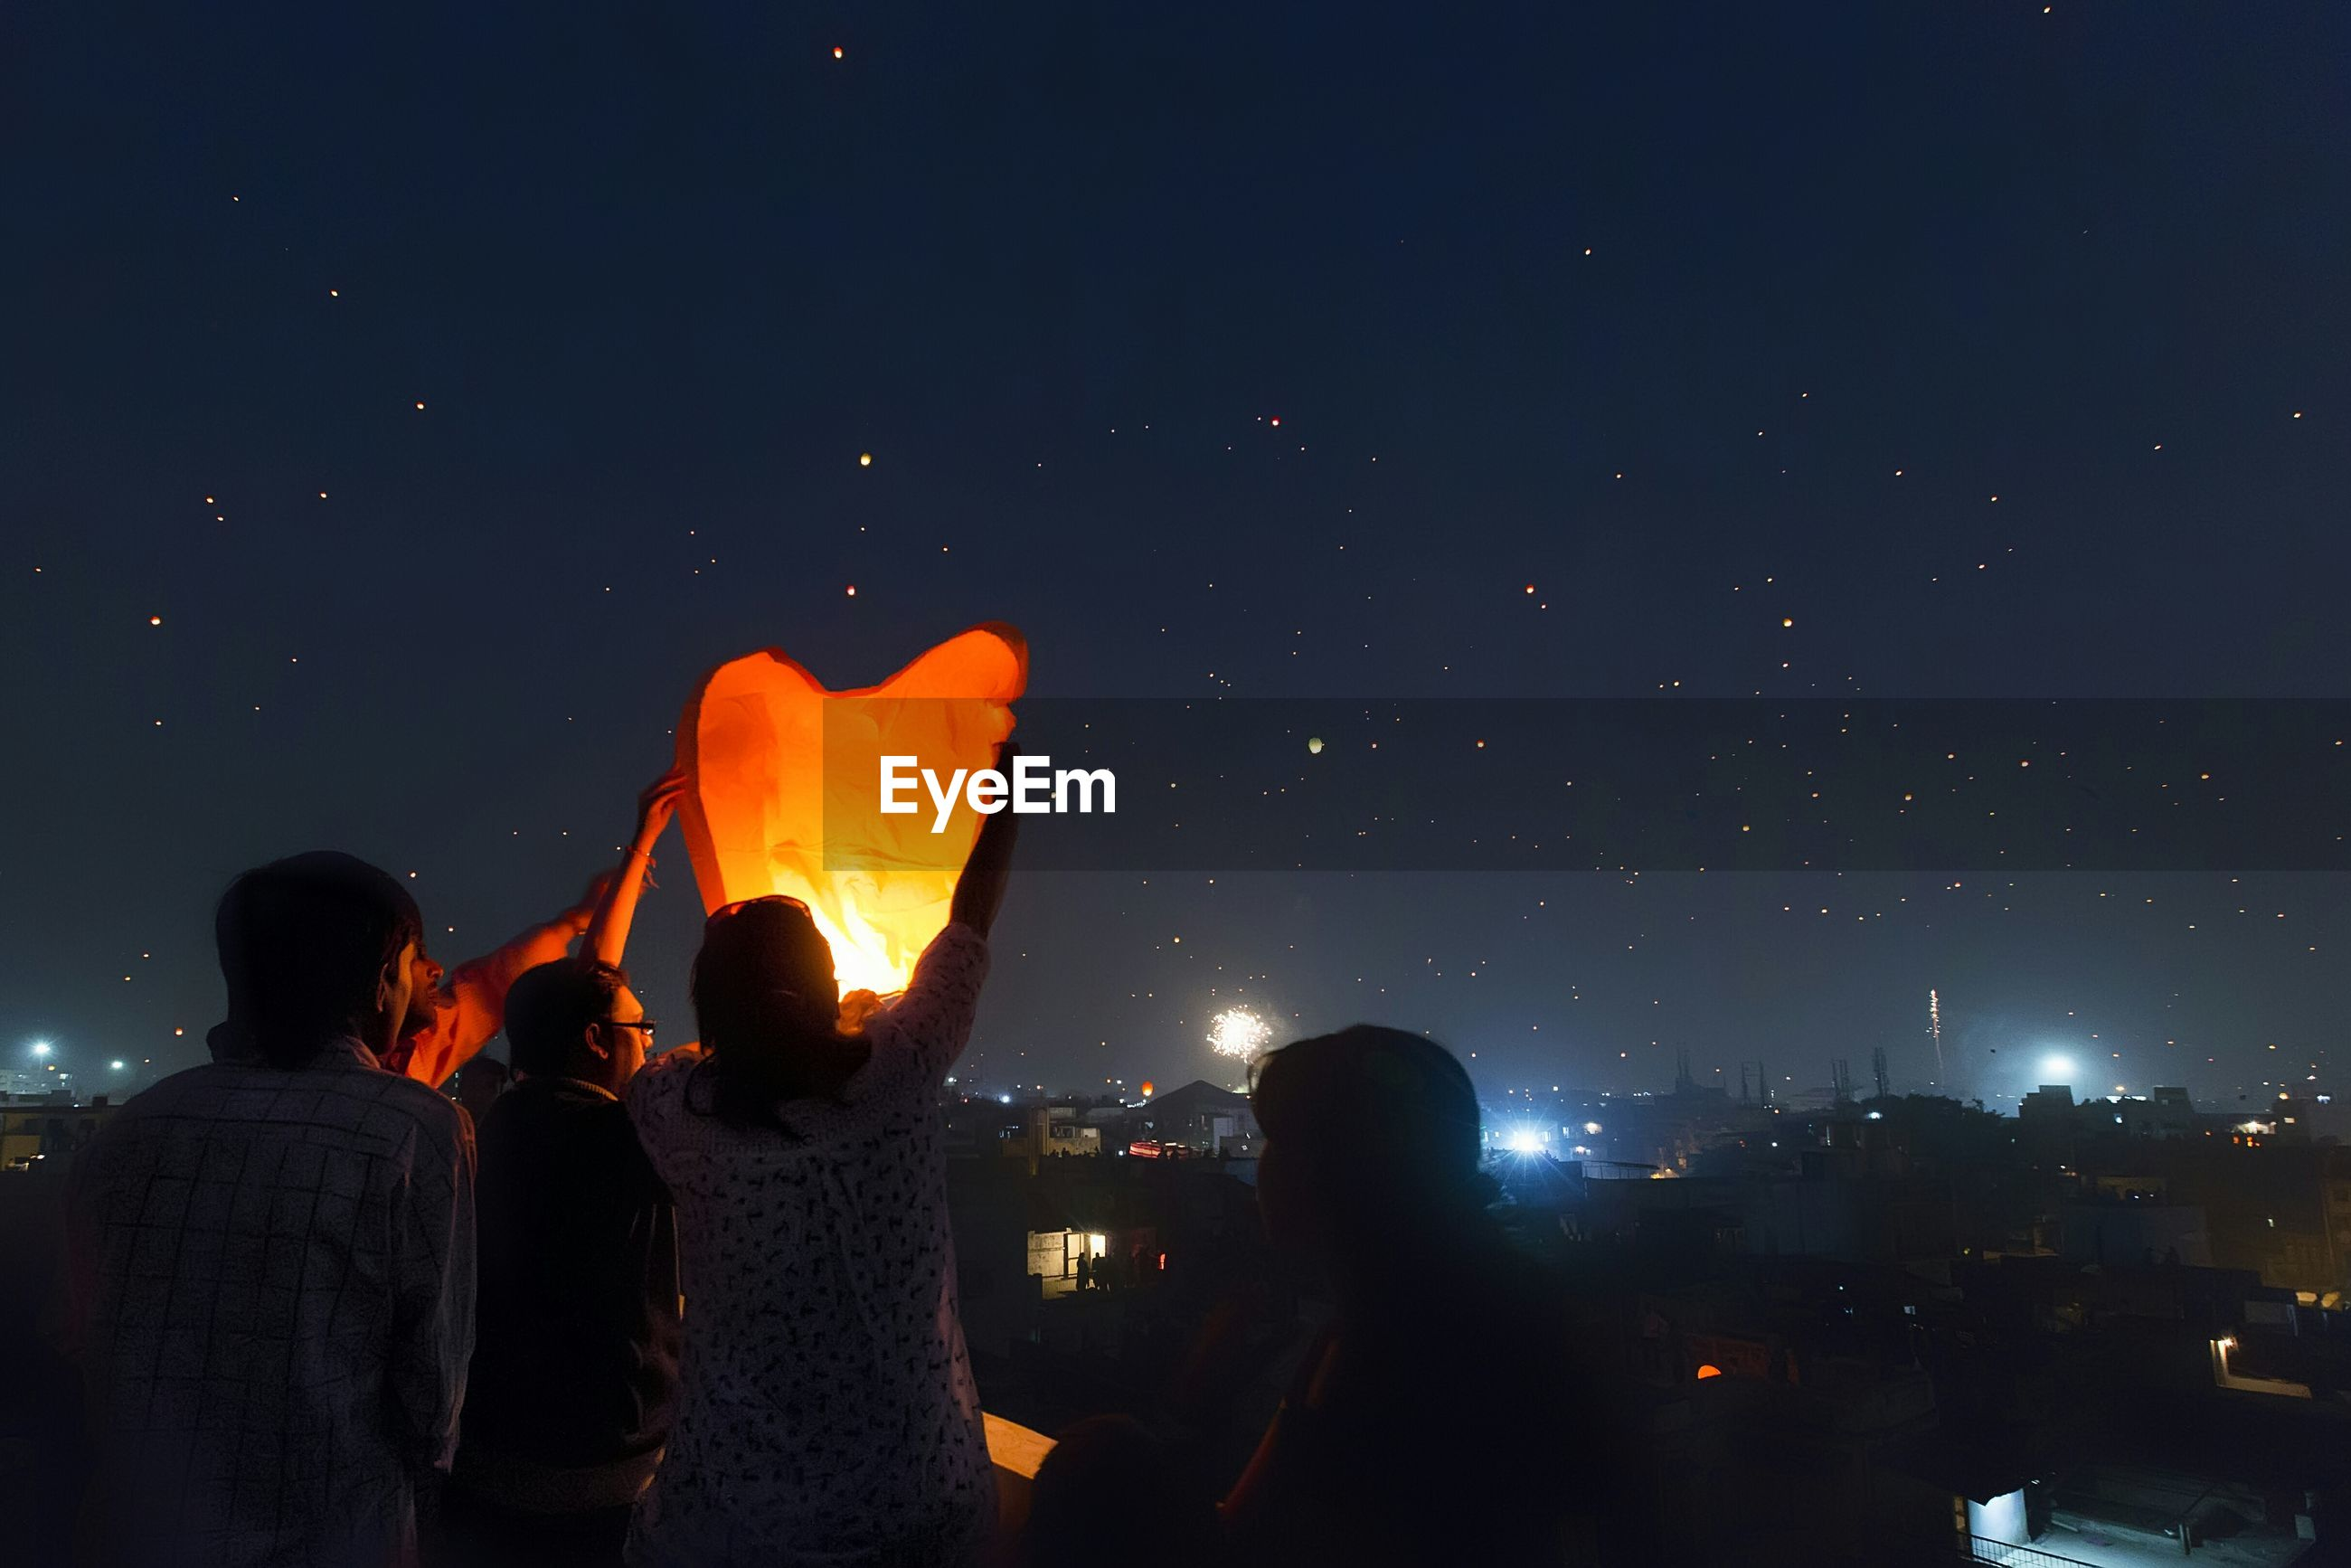 PANORAMIC VIEW OF CROWD AT NIGHT AGAINST SKY